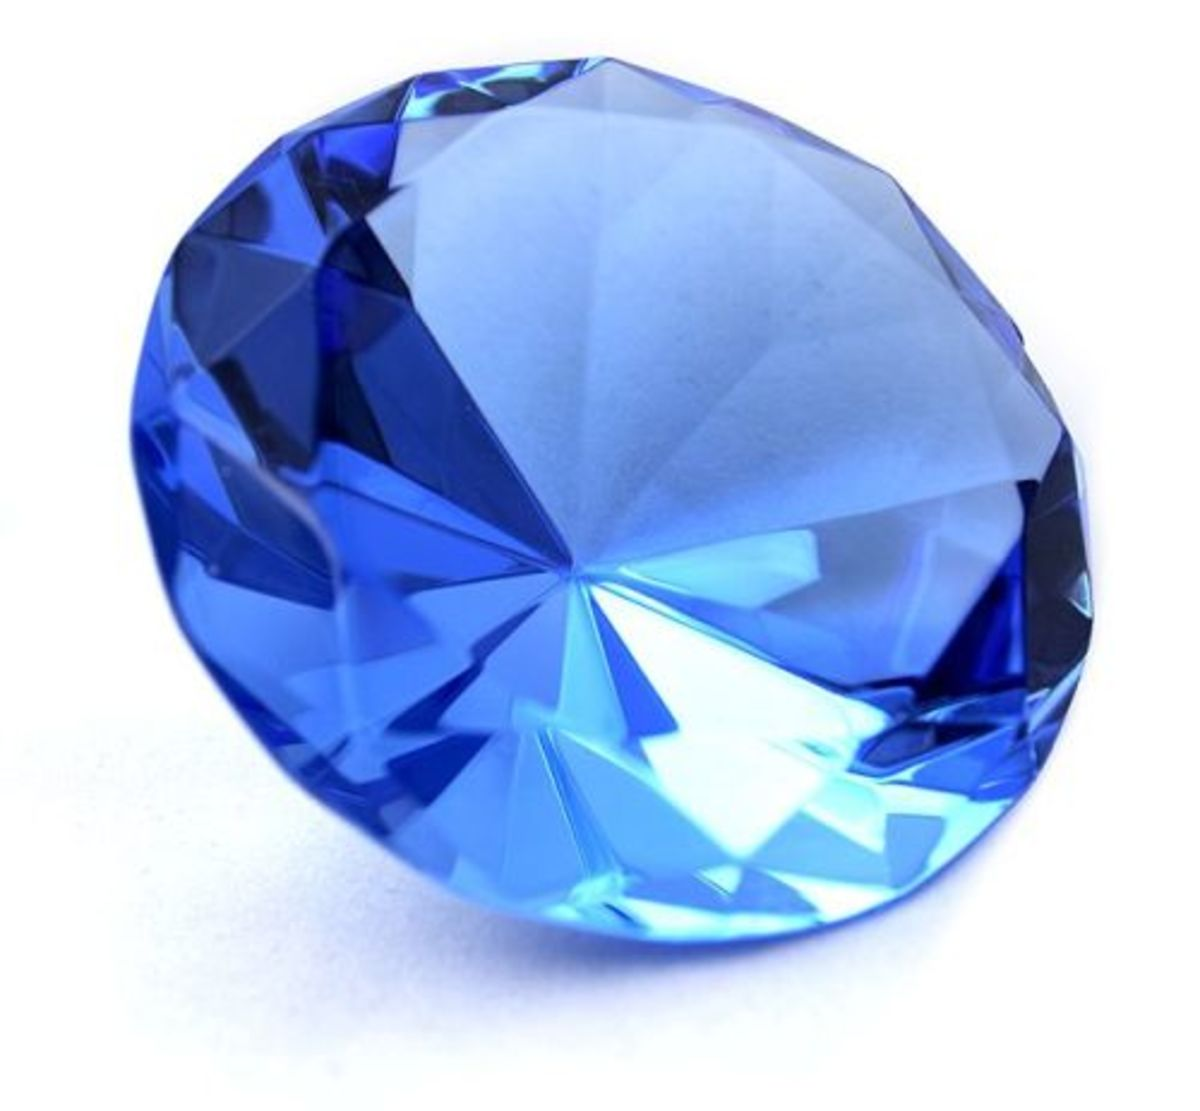 This is a gem-cut sapphire.